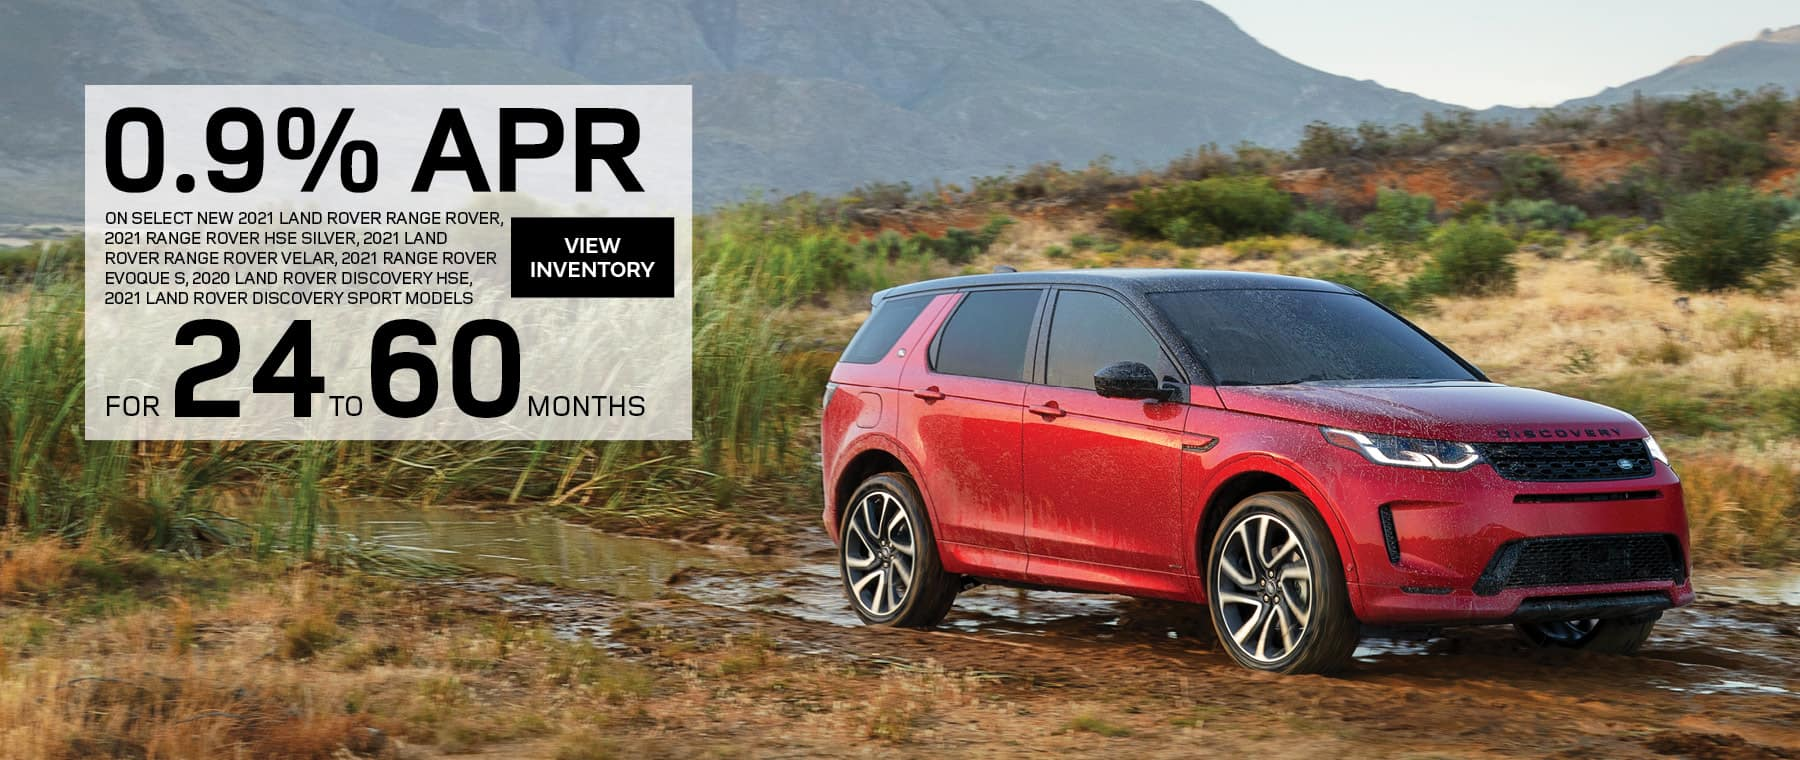 0.9% for up to 60 months on select new 2021 Land Rover models